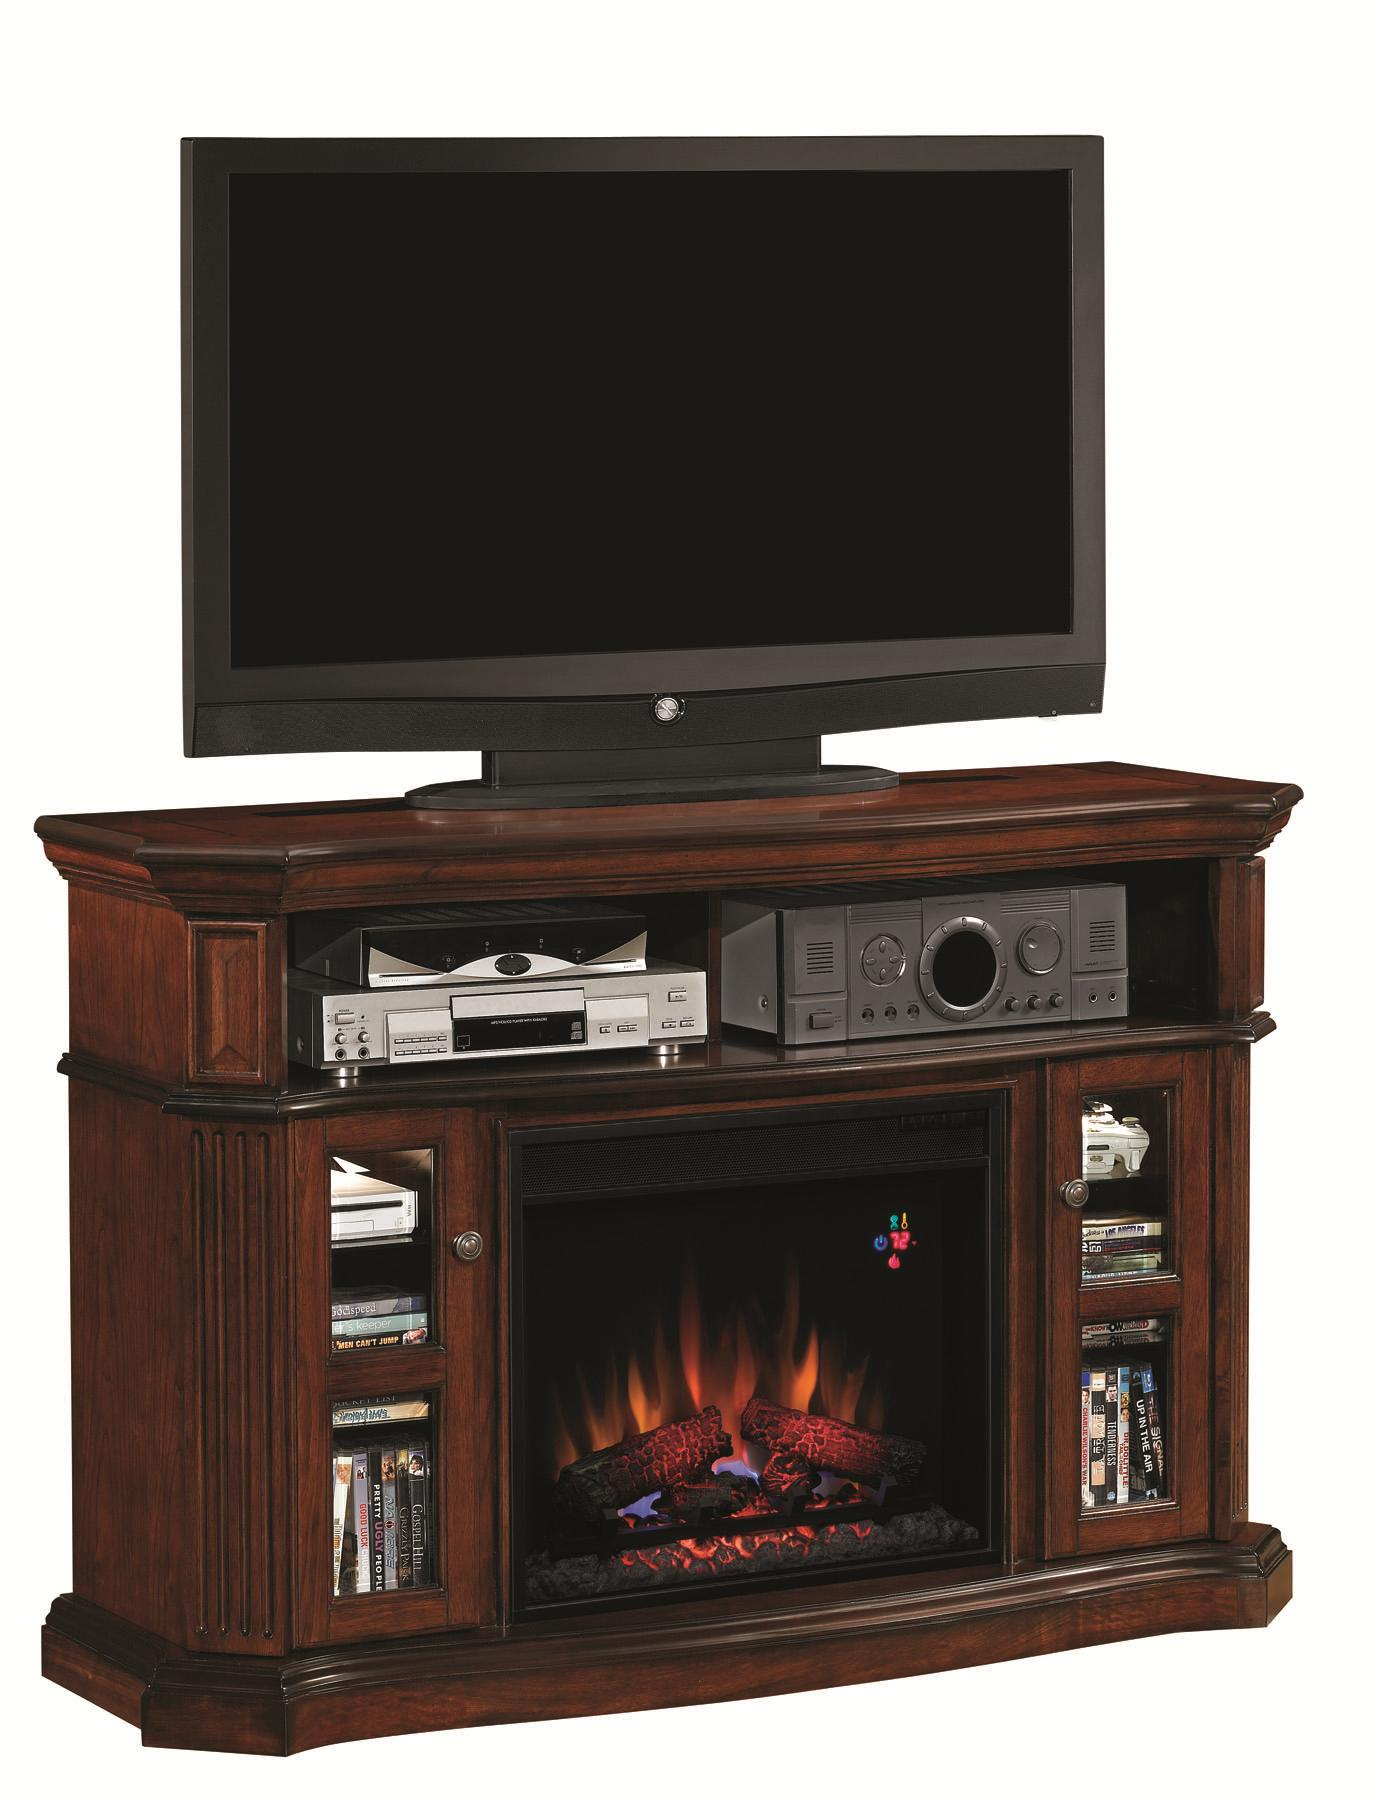 "Morris Home Furnishings Claxton Claxton 2pc Fireplace w/23"" Insert - Item Number: 23MM1297-C259/23EF031GRP"